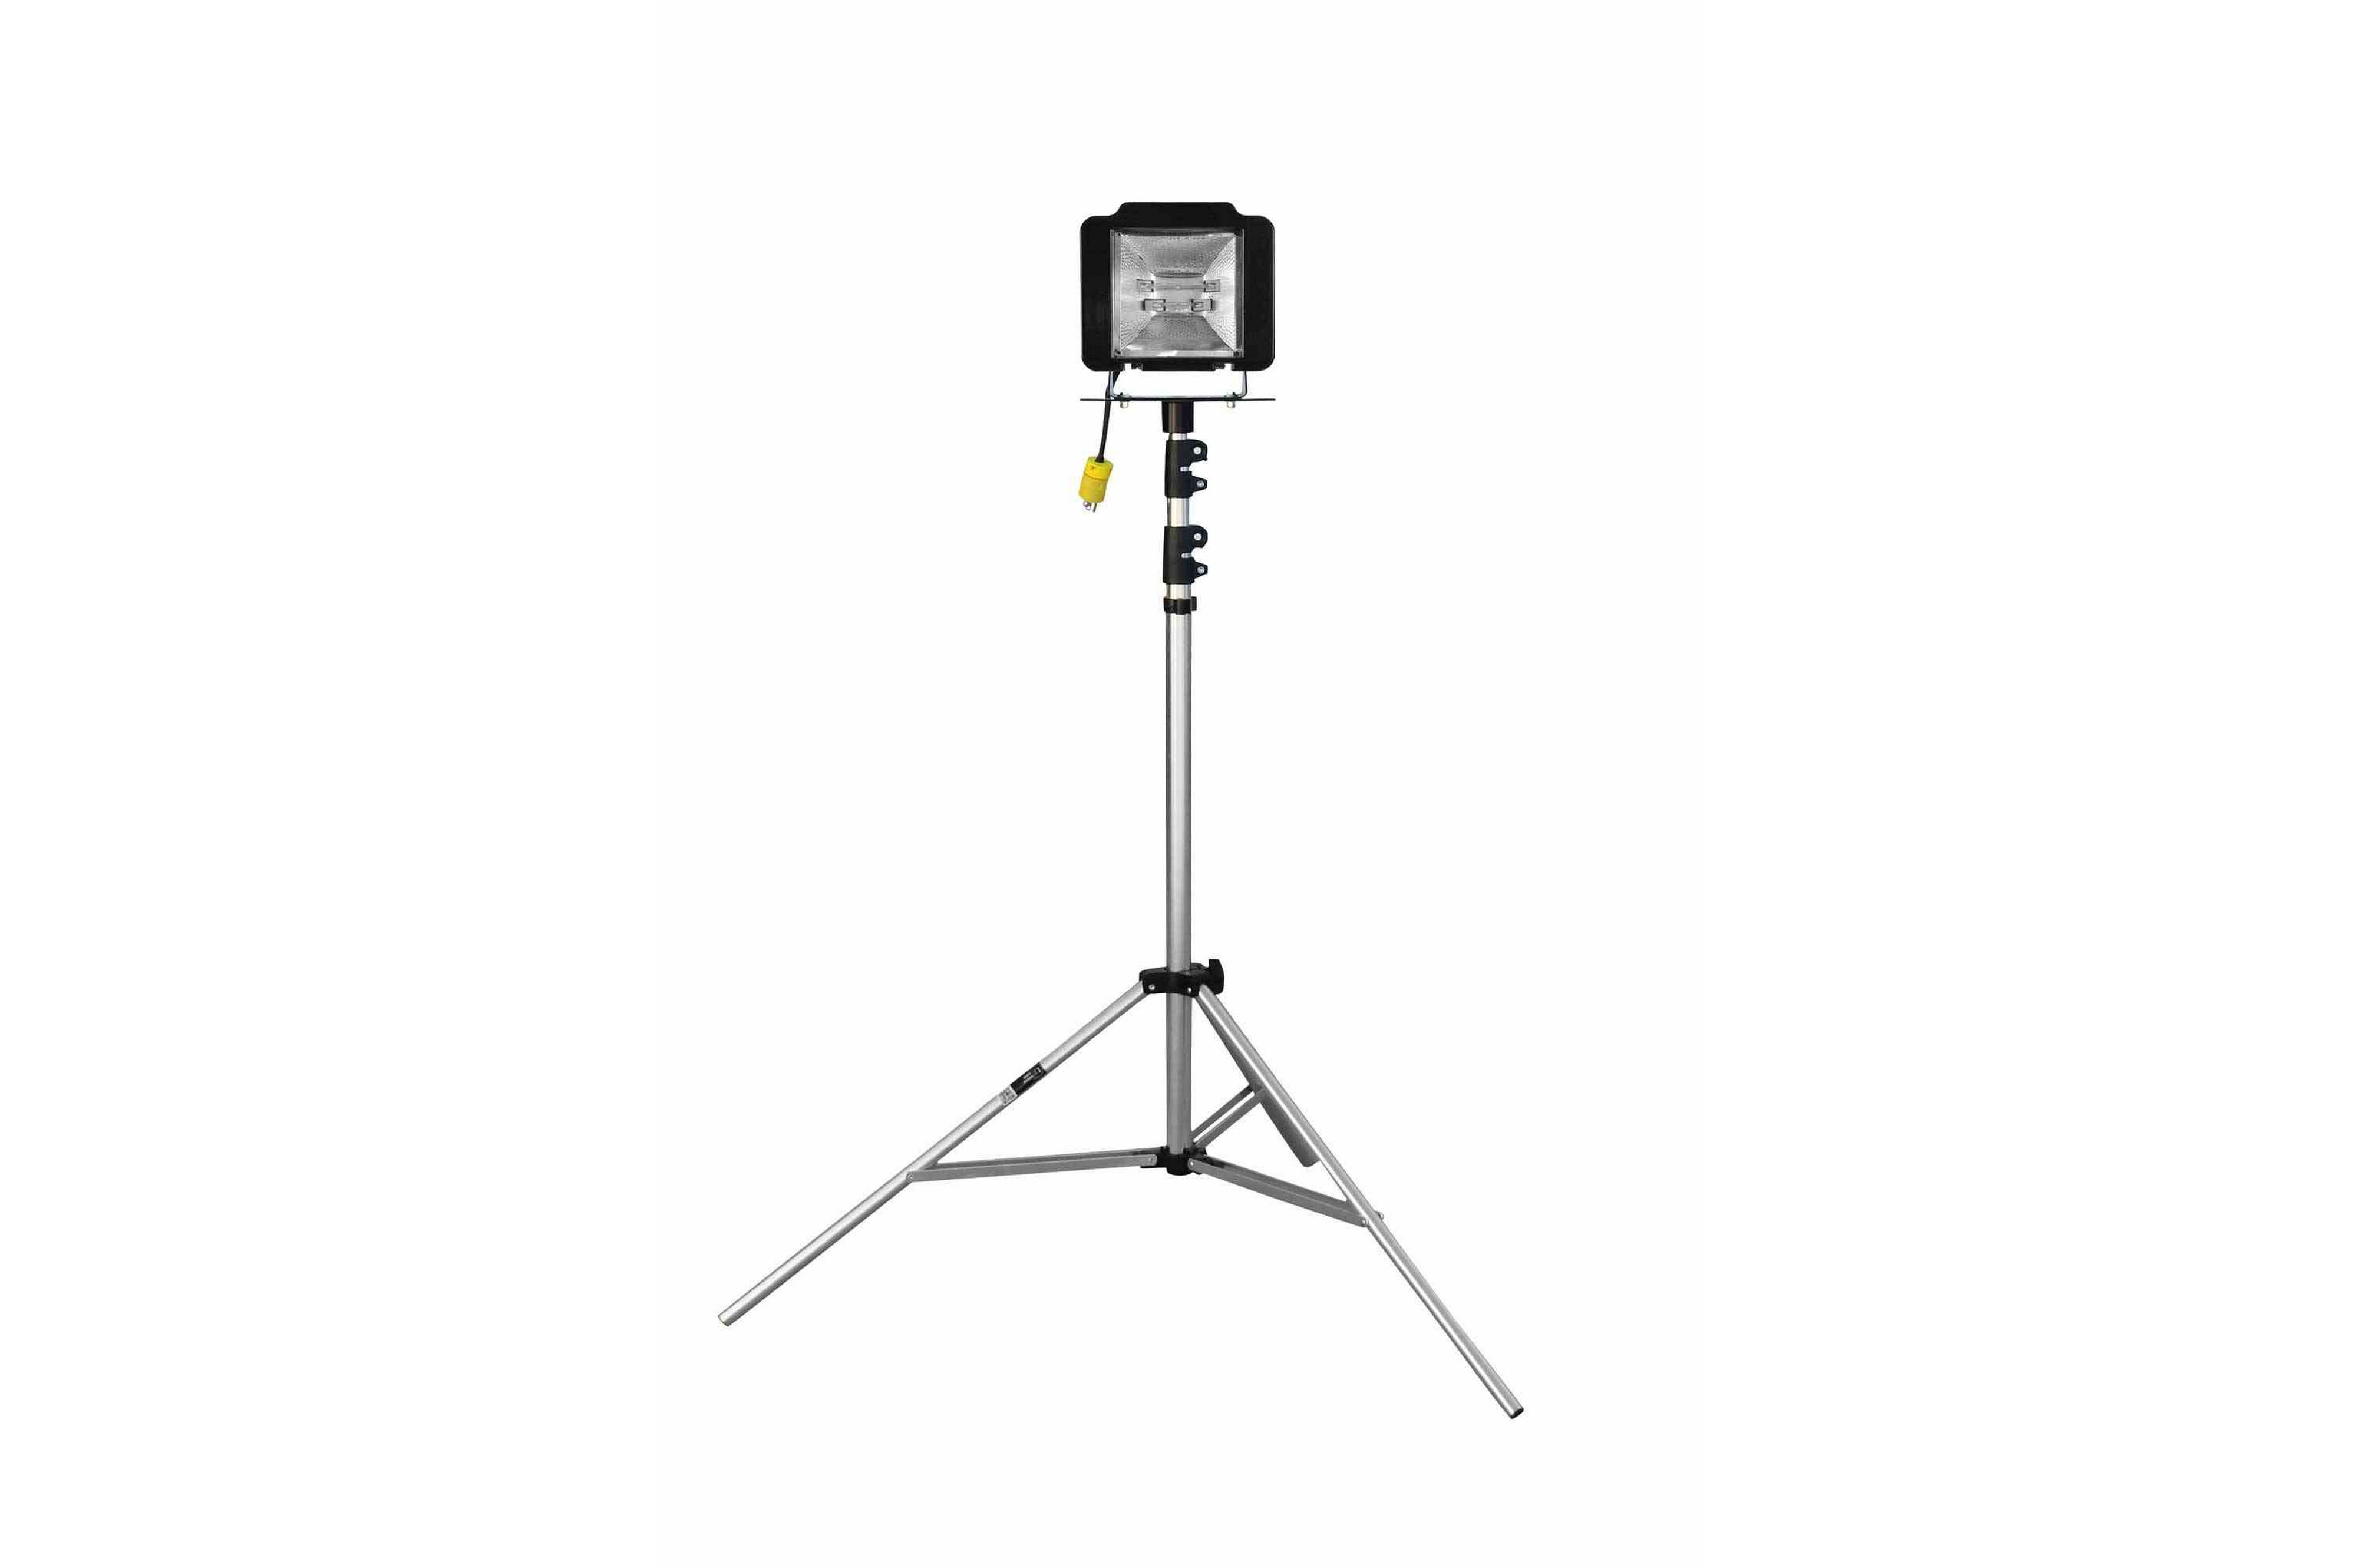 500 Watt Quartz Flood Light On Telescoping Tripod